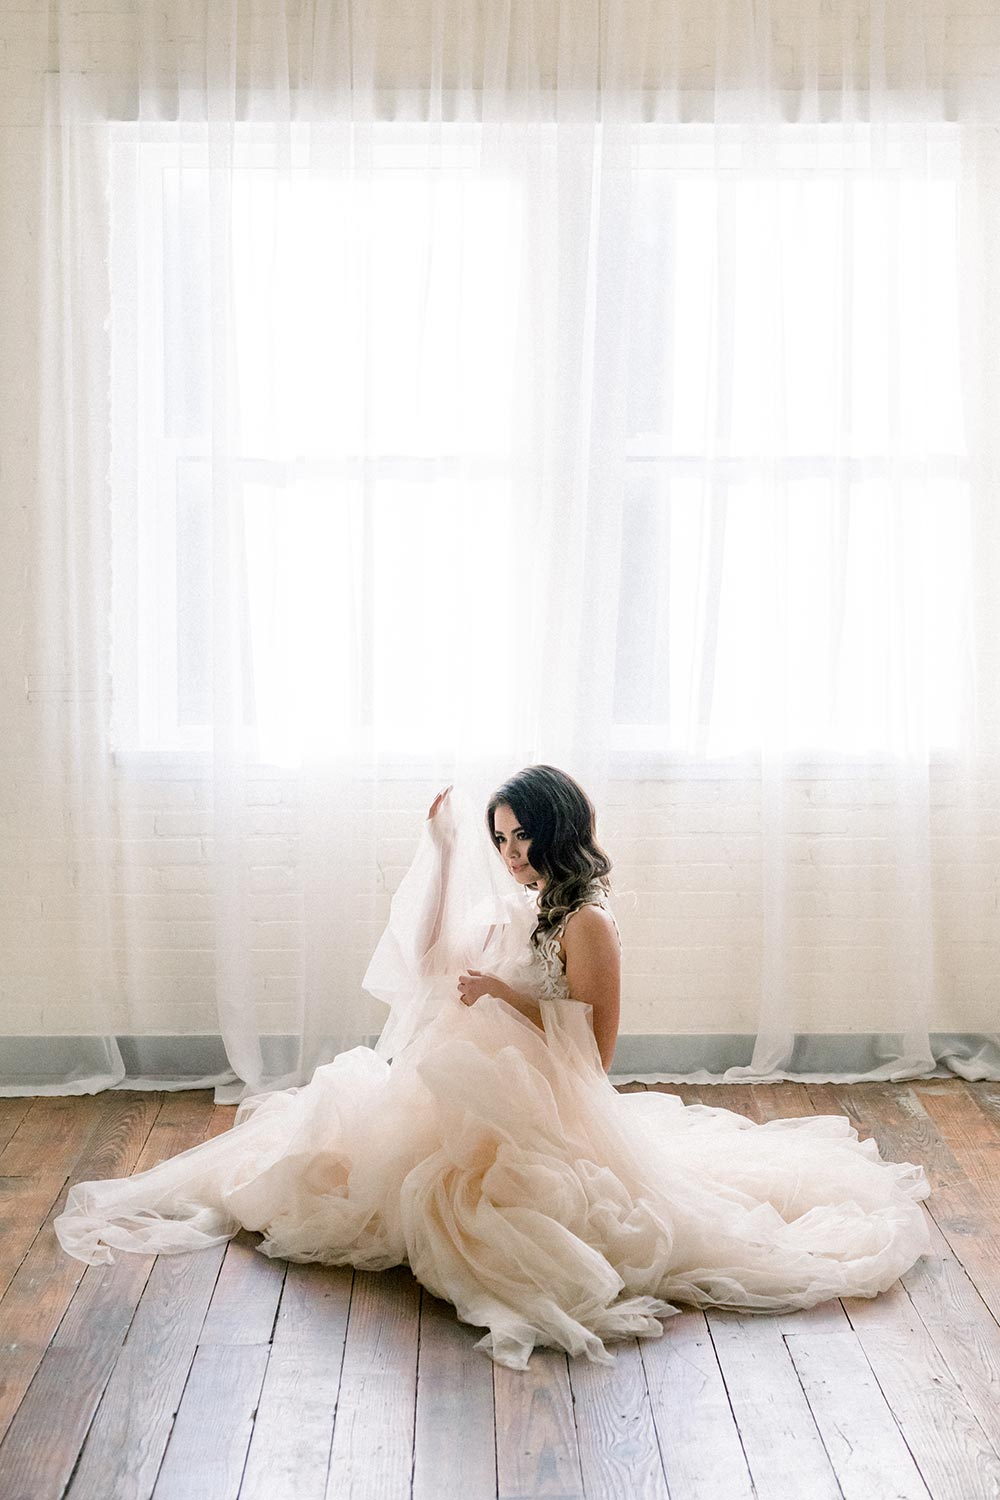 backless wedding dress with intricate pattern